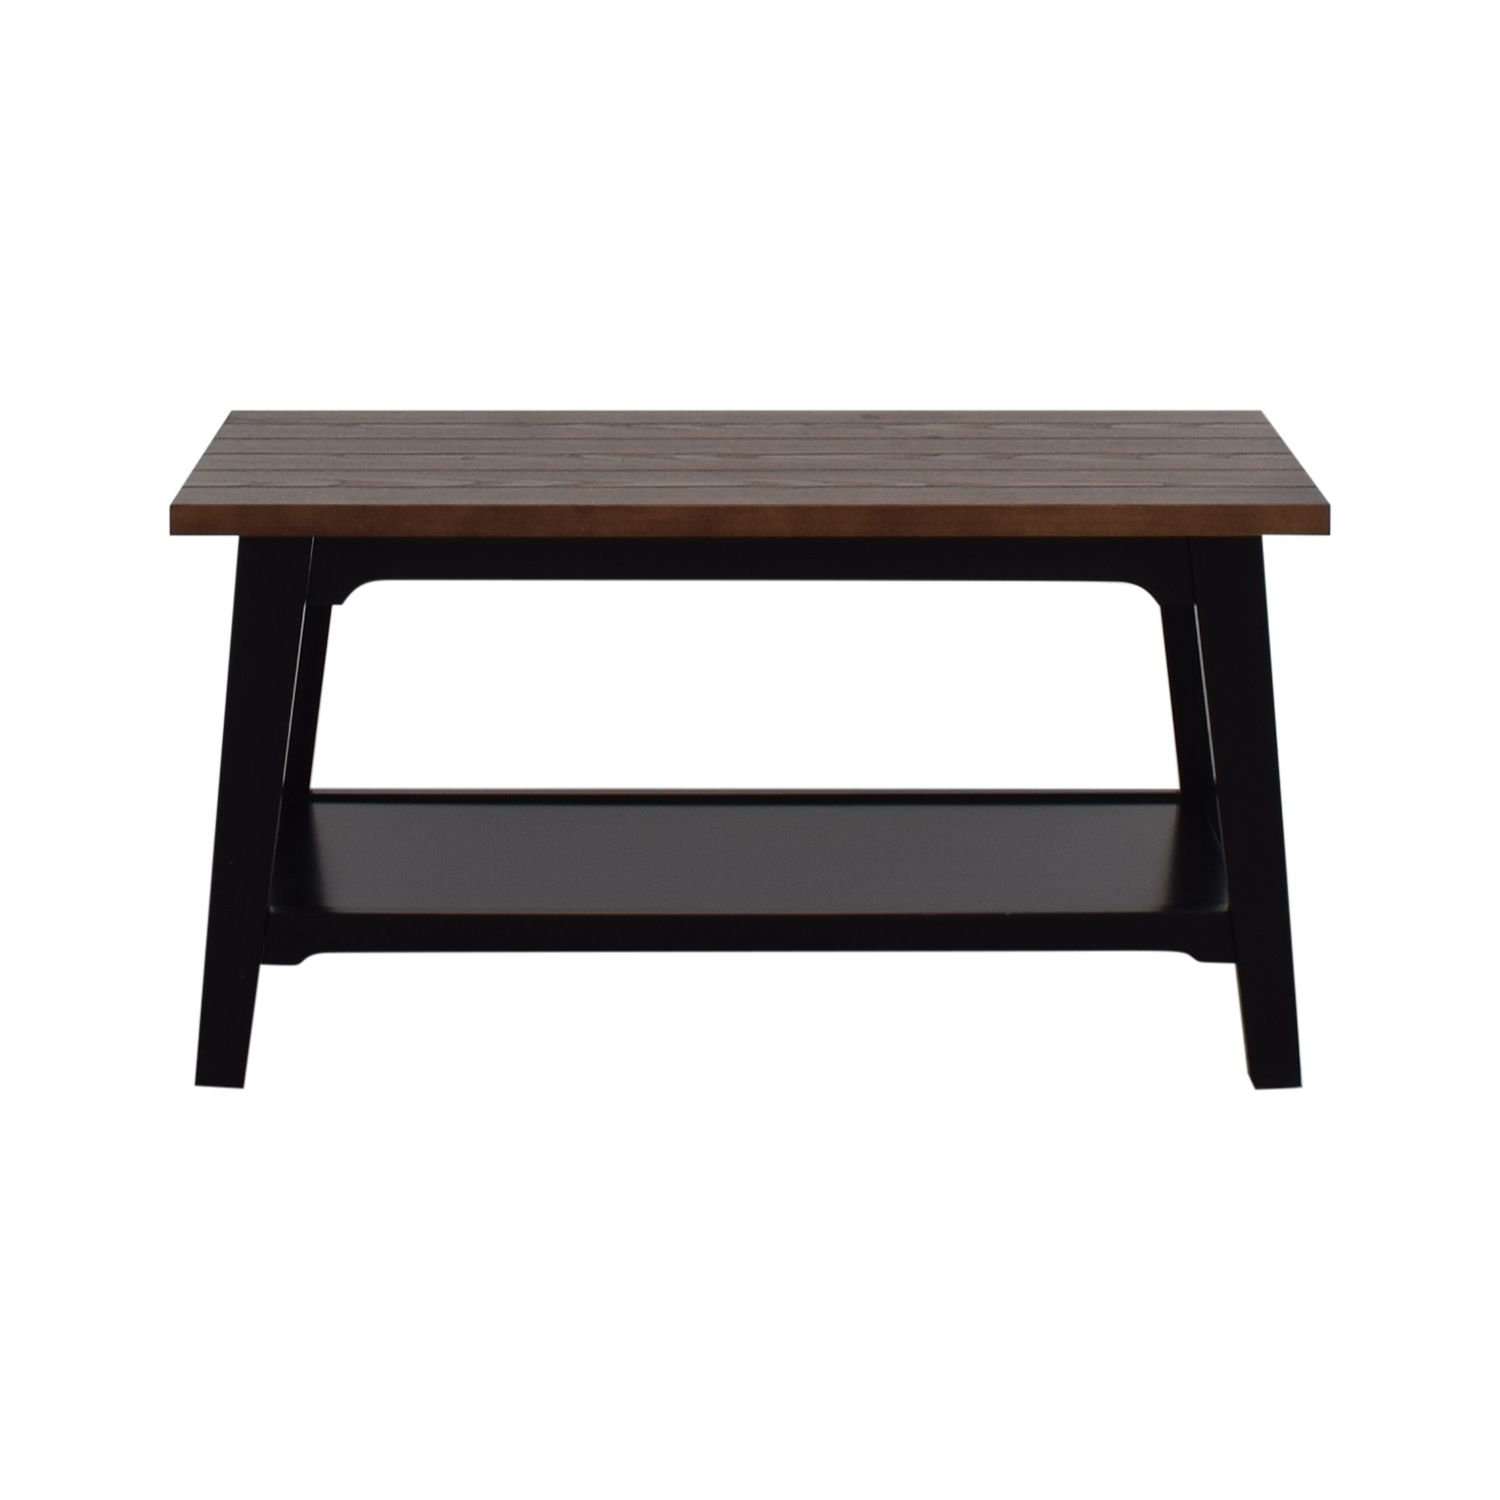 Bed, Bath, & Beyond Bed Bath & Beyond Brown Wood Coffee Table